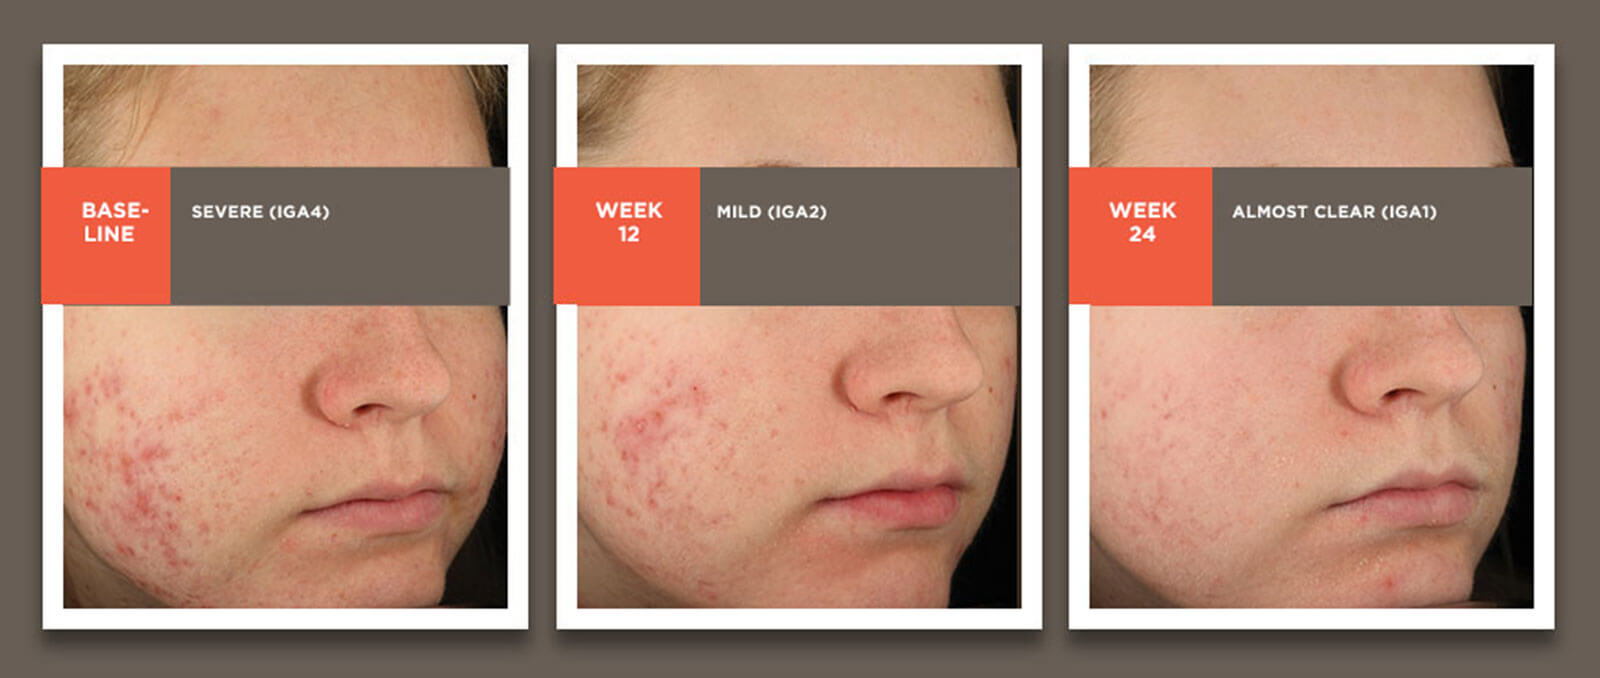 Images showing acne treatment results from baseline through 24 weeks in an 18-yo white female.